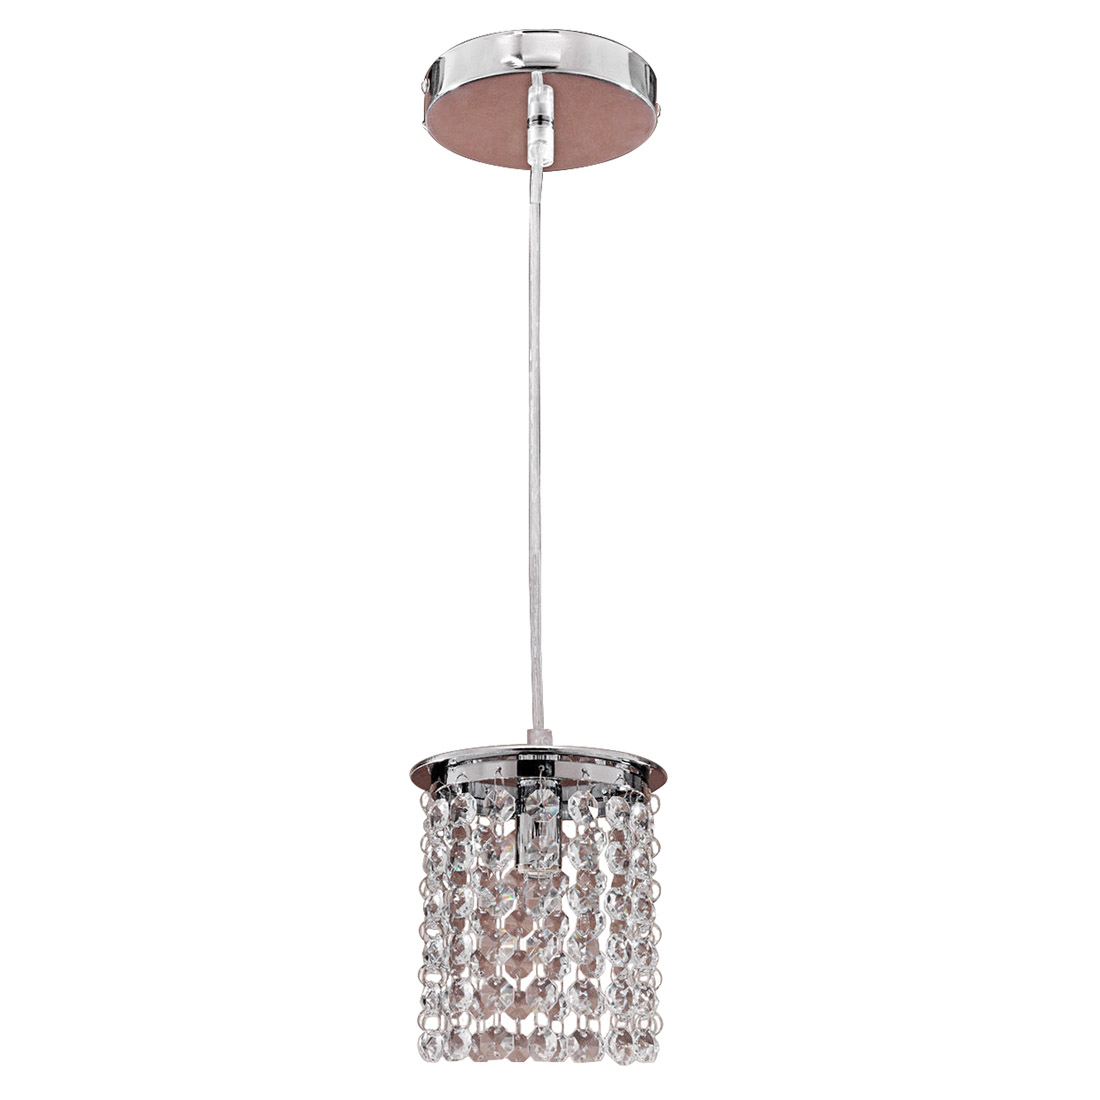 modern pendant lighting for kitchen chandeliers crystal ceiling light chandelier